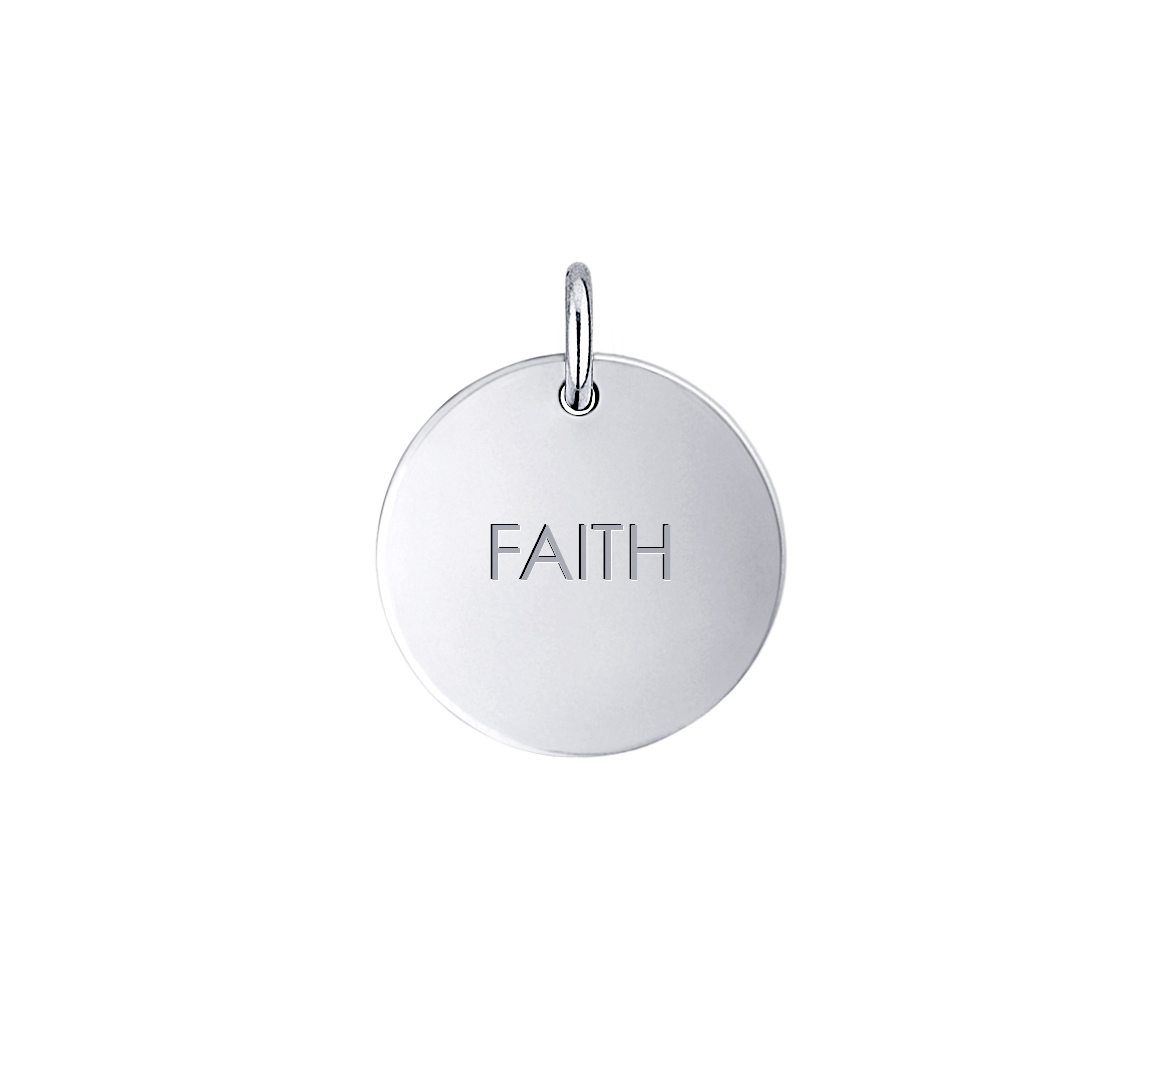 NEW Charity Edition FAITH by Nadja Auermann - Classic